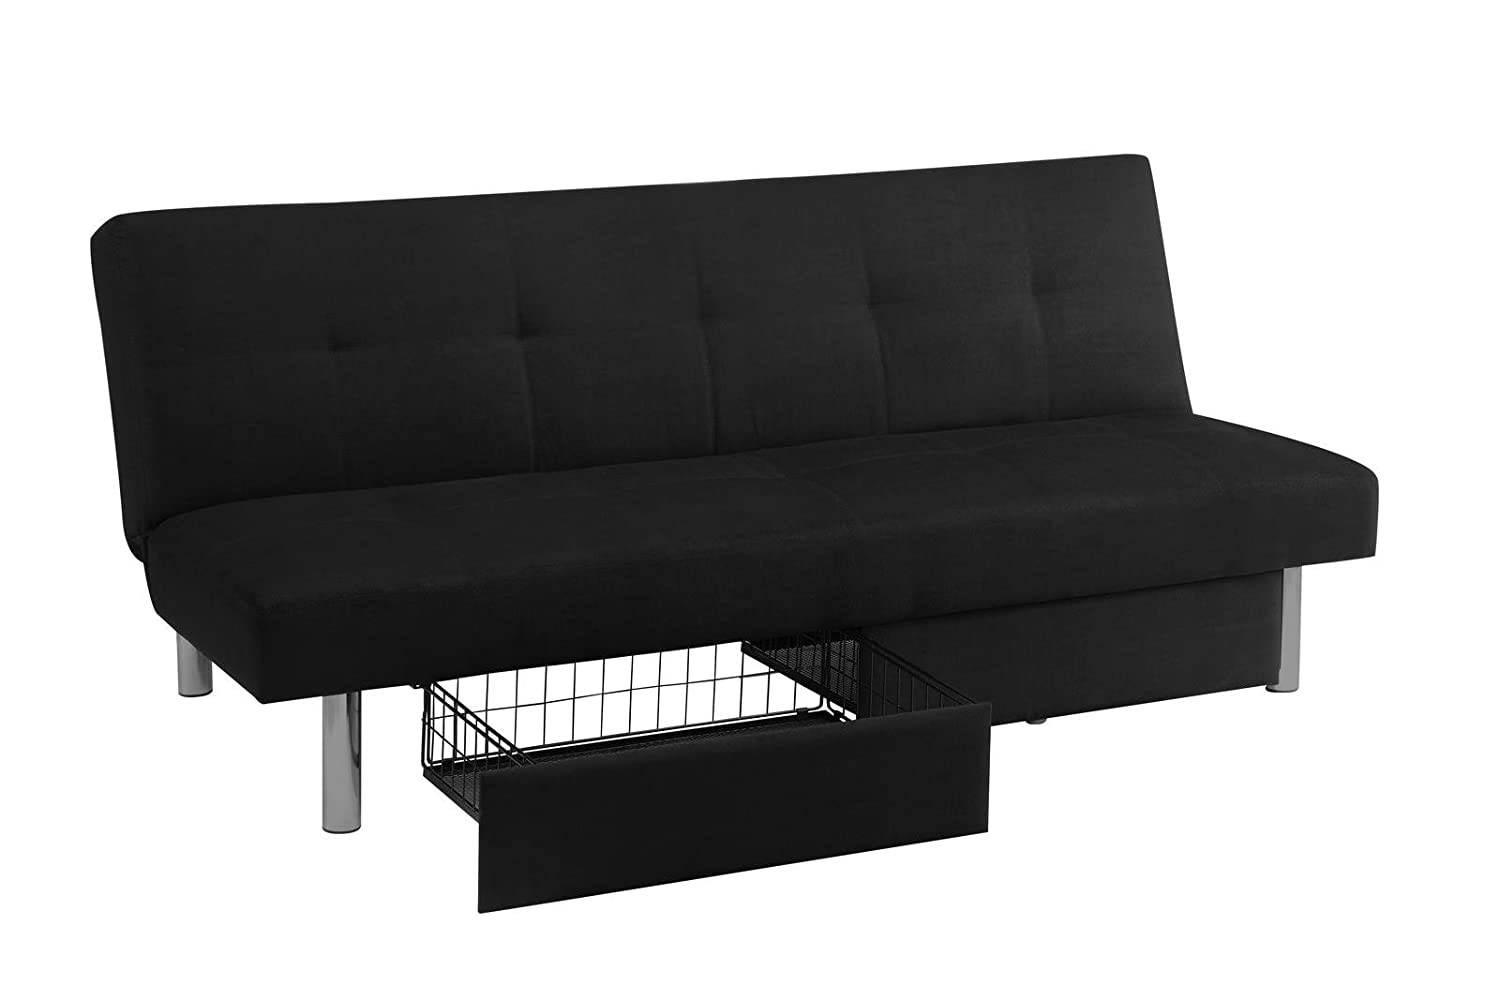 Convertible couch with storage - Amazon Com Dhp Sola Convertible Sofa Futon W Space Saving Storage Compartments Chrome Legs And Upholstered In Rich Black Microfiber Kitchen Dining